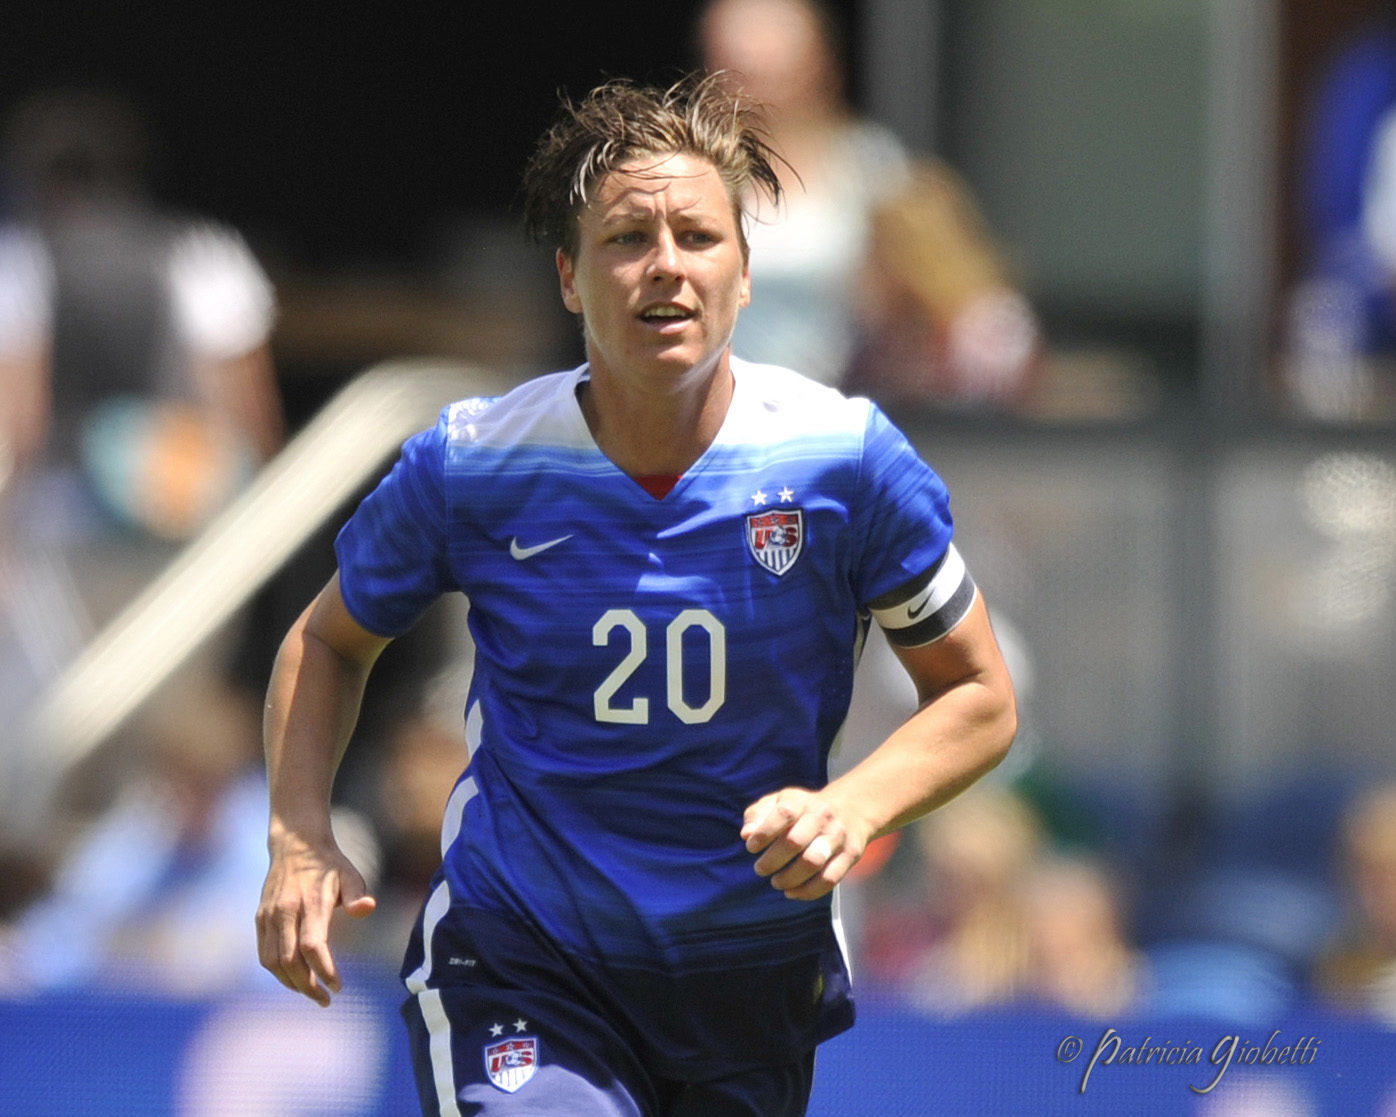 Abby Wambach announced her engagement over the weekend. (Photo Copyright Patricia Giobetti for The Equalizer)